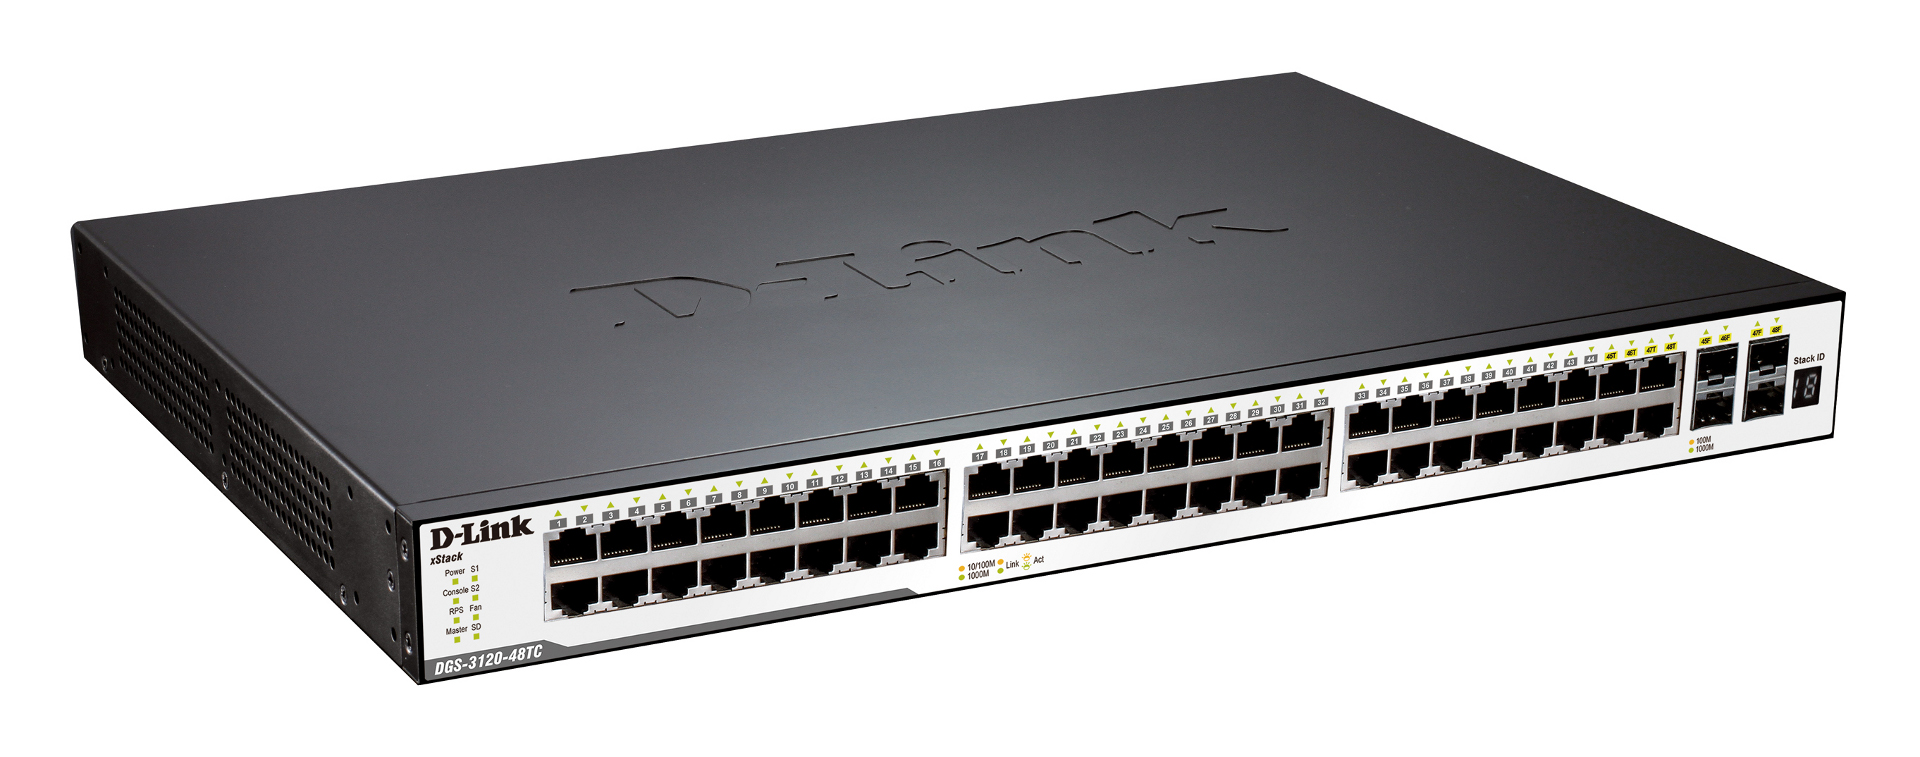 D-LINK DGS-3120-48TC DRIVERS FOR MAC DOWNLOAD